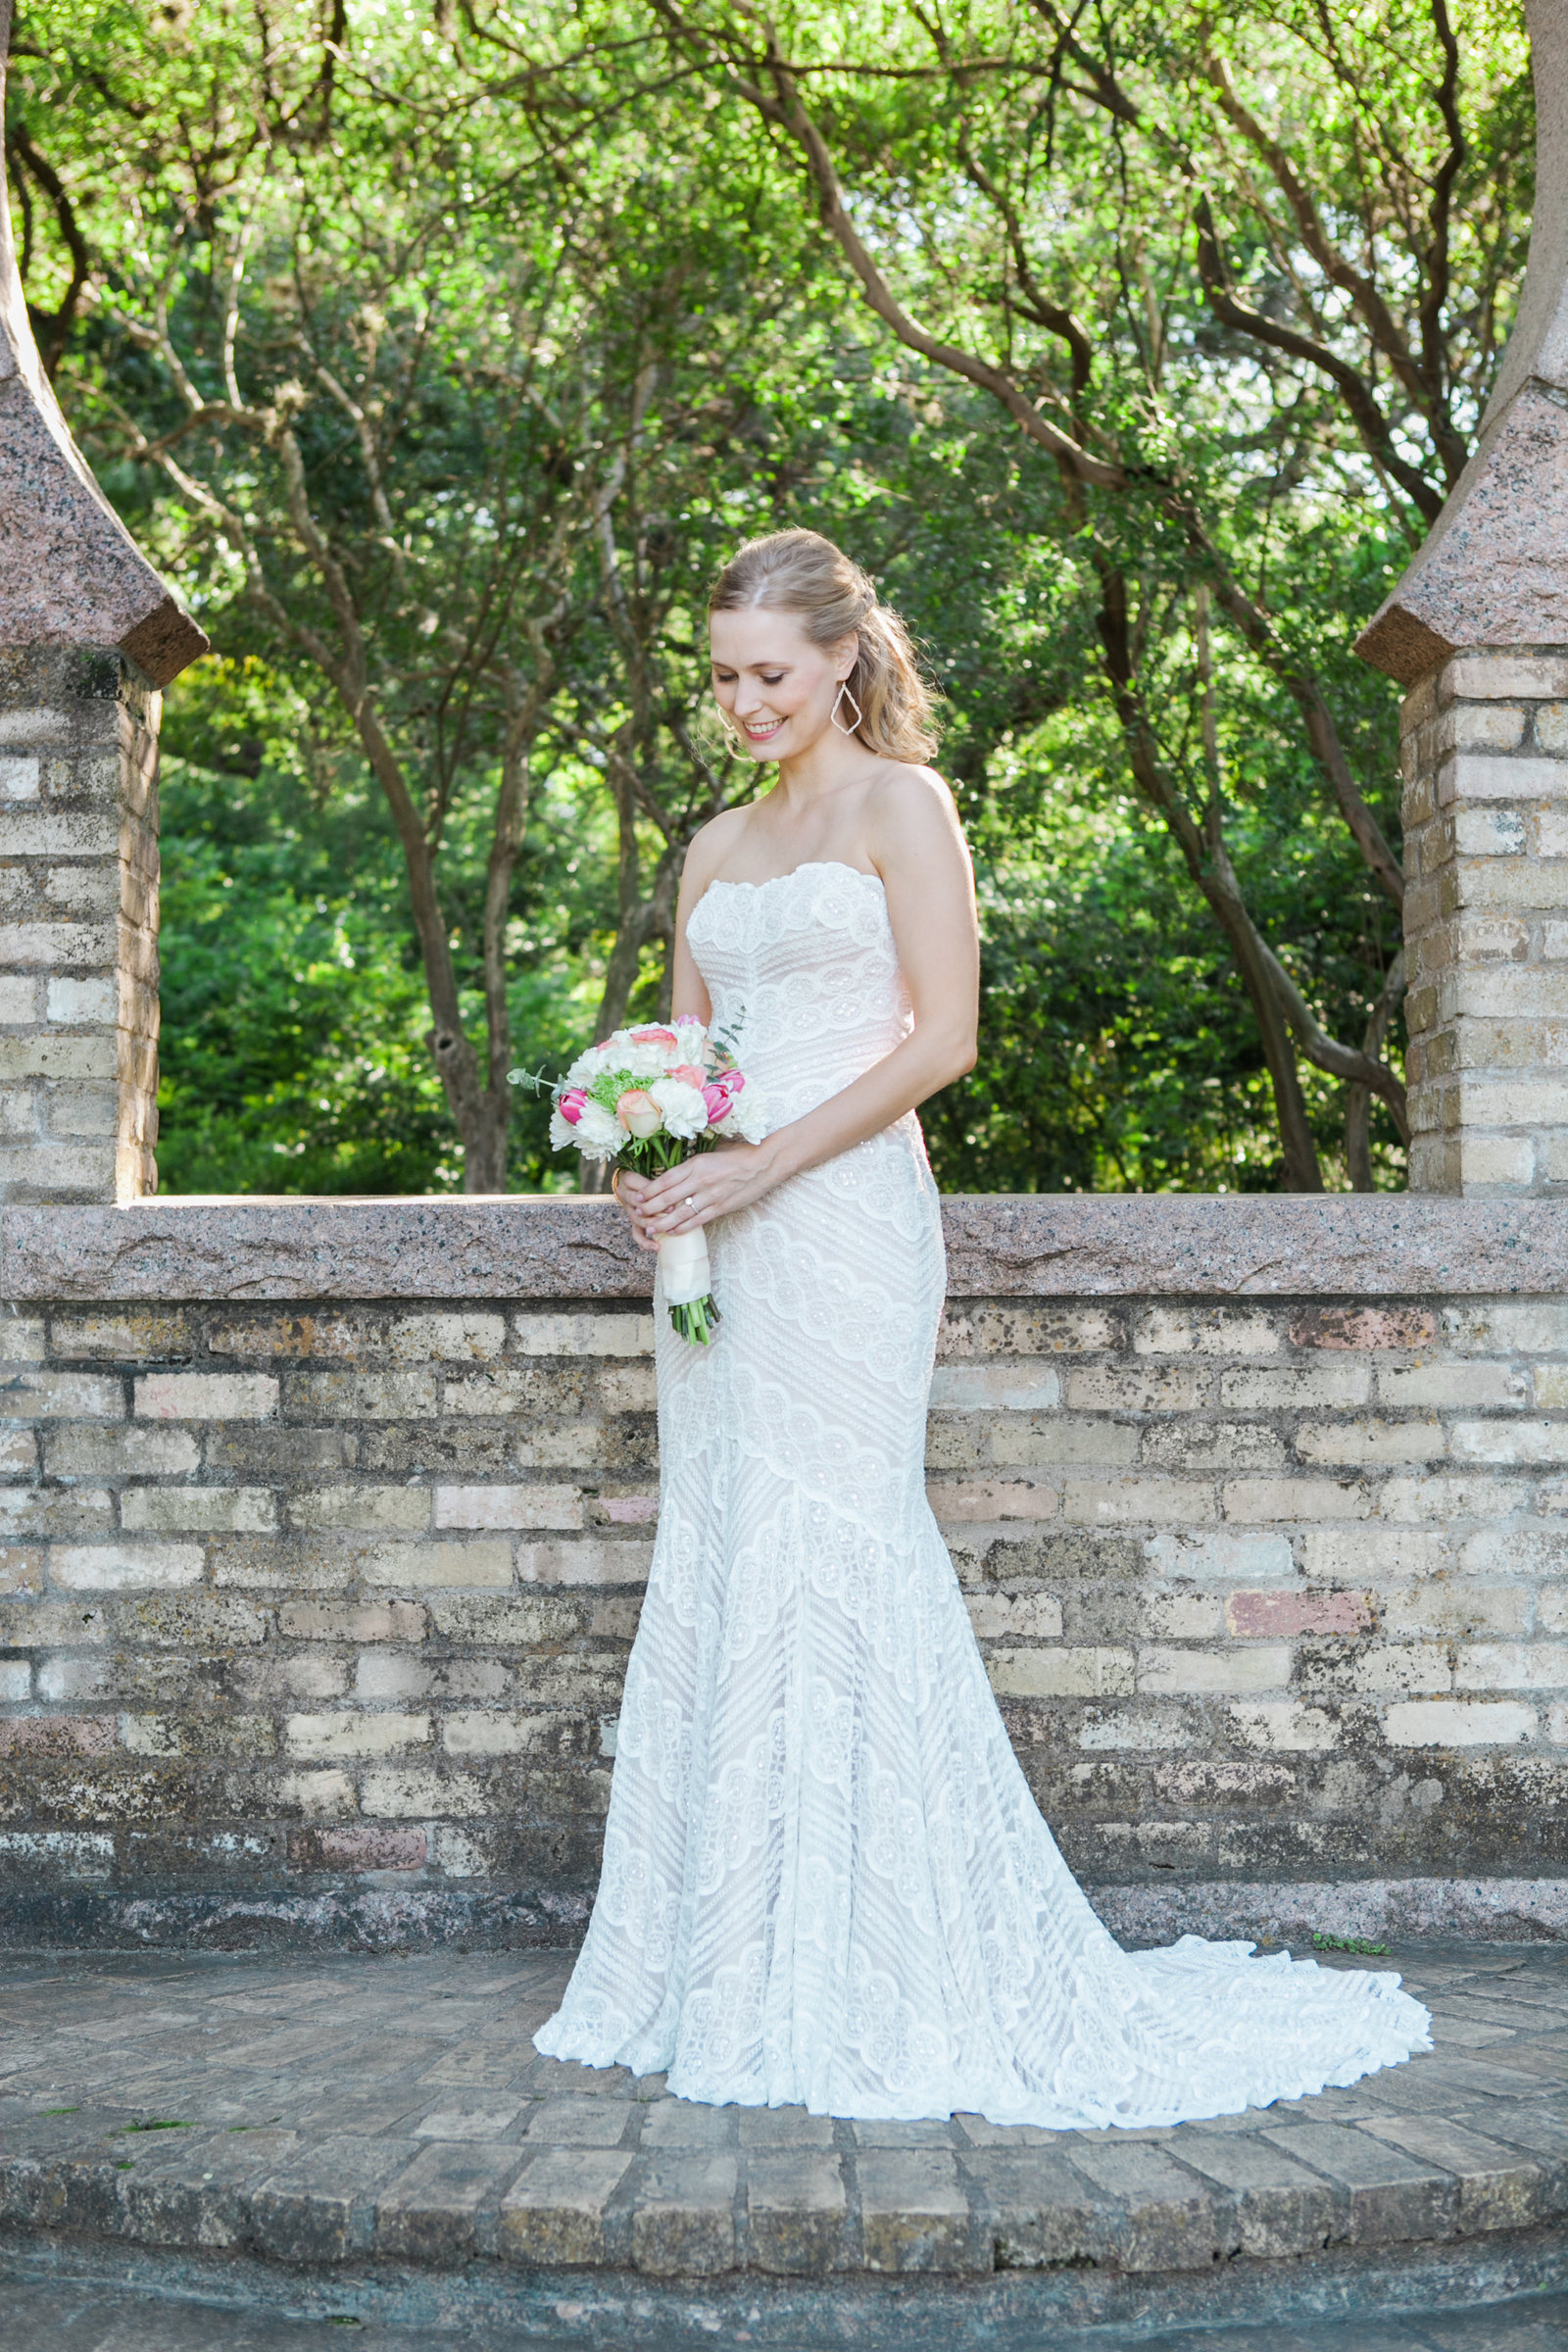 Austin Family Photographer, Tiffany Chapman, bride looking down at flowers